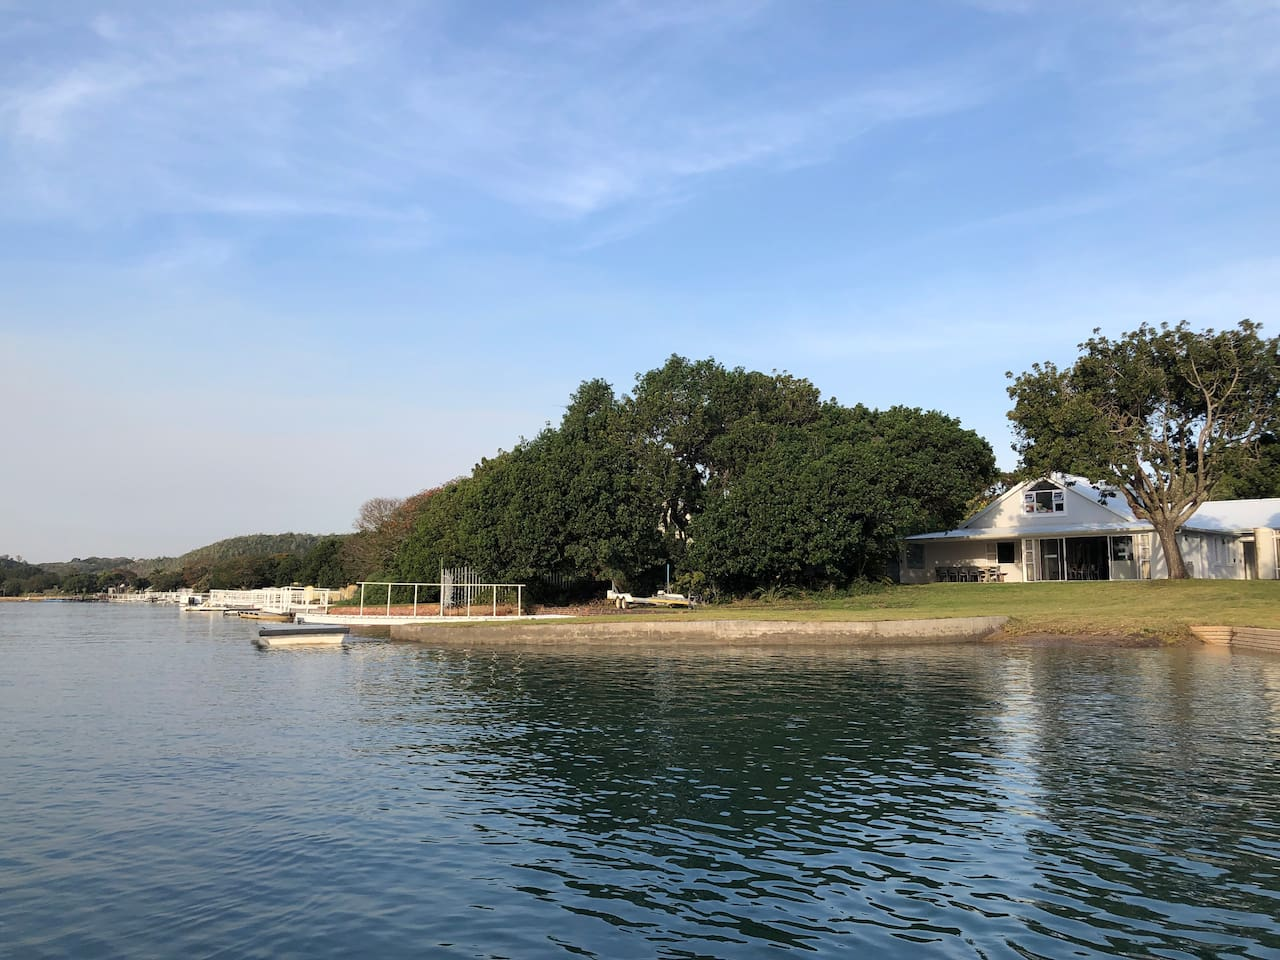 Mentone on the Kowie River with own jetty